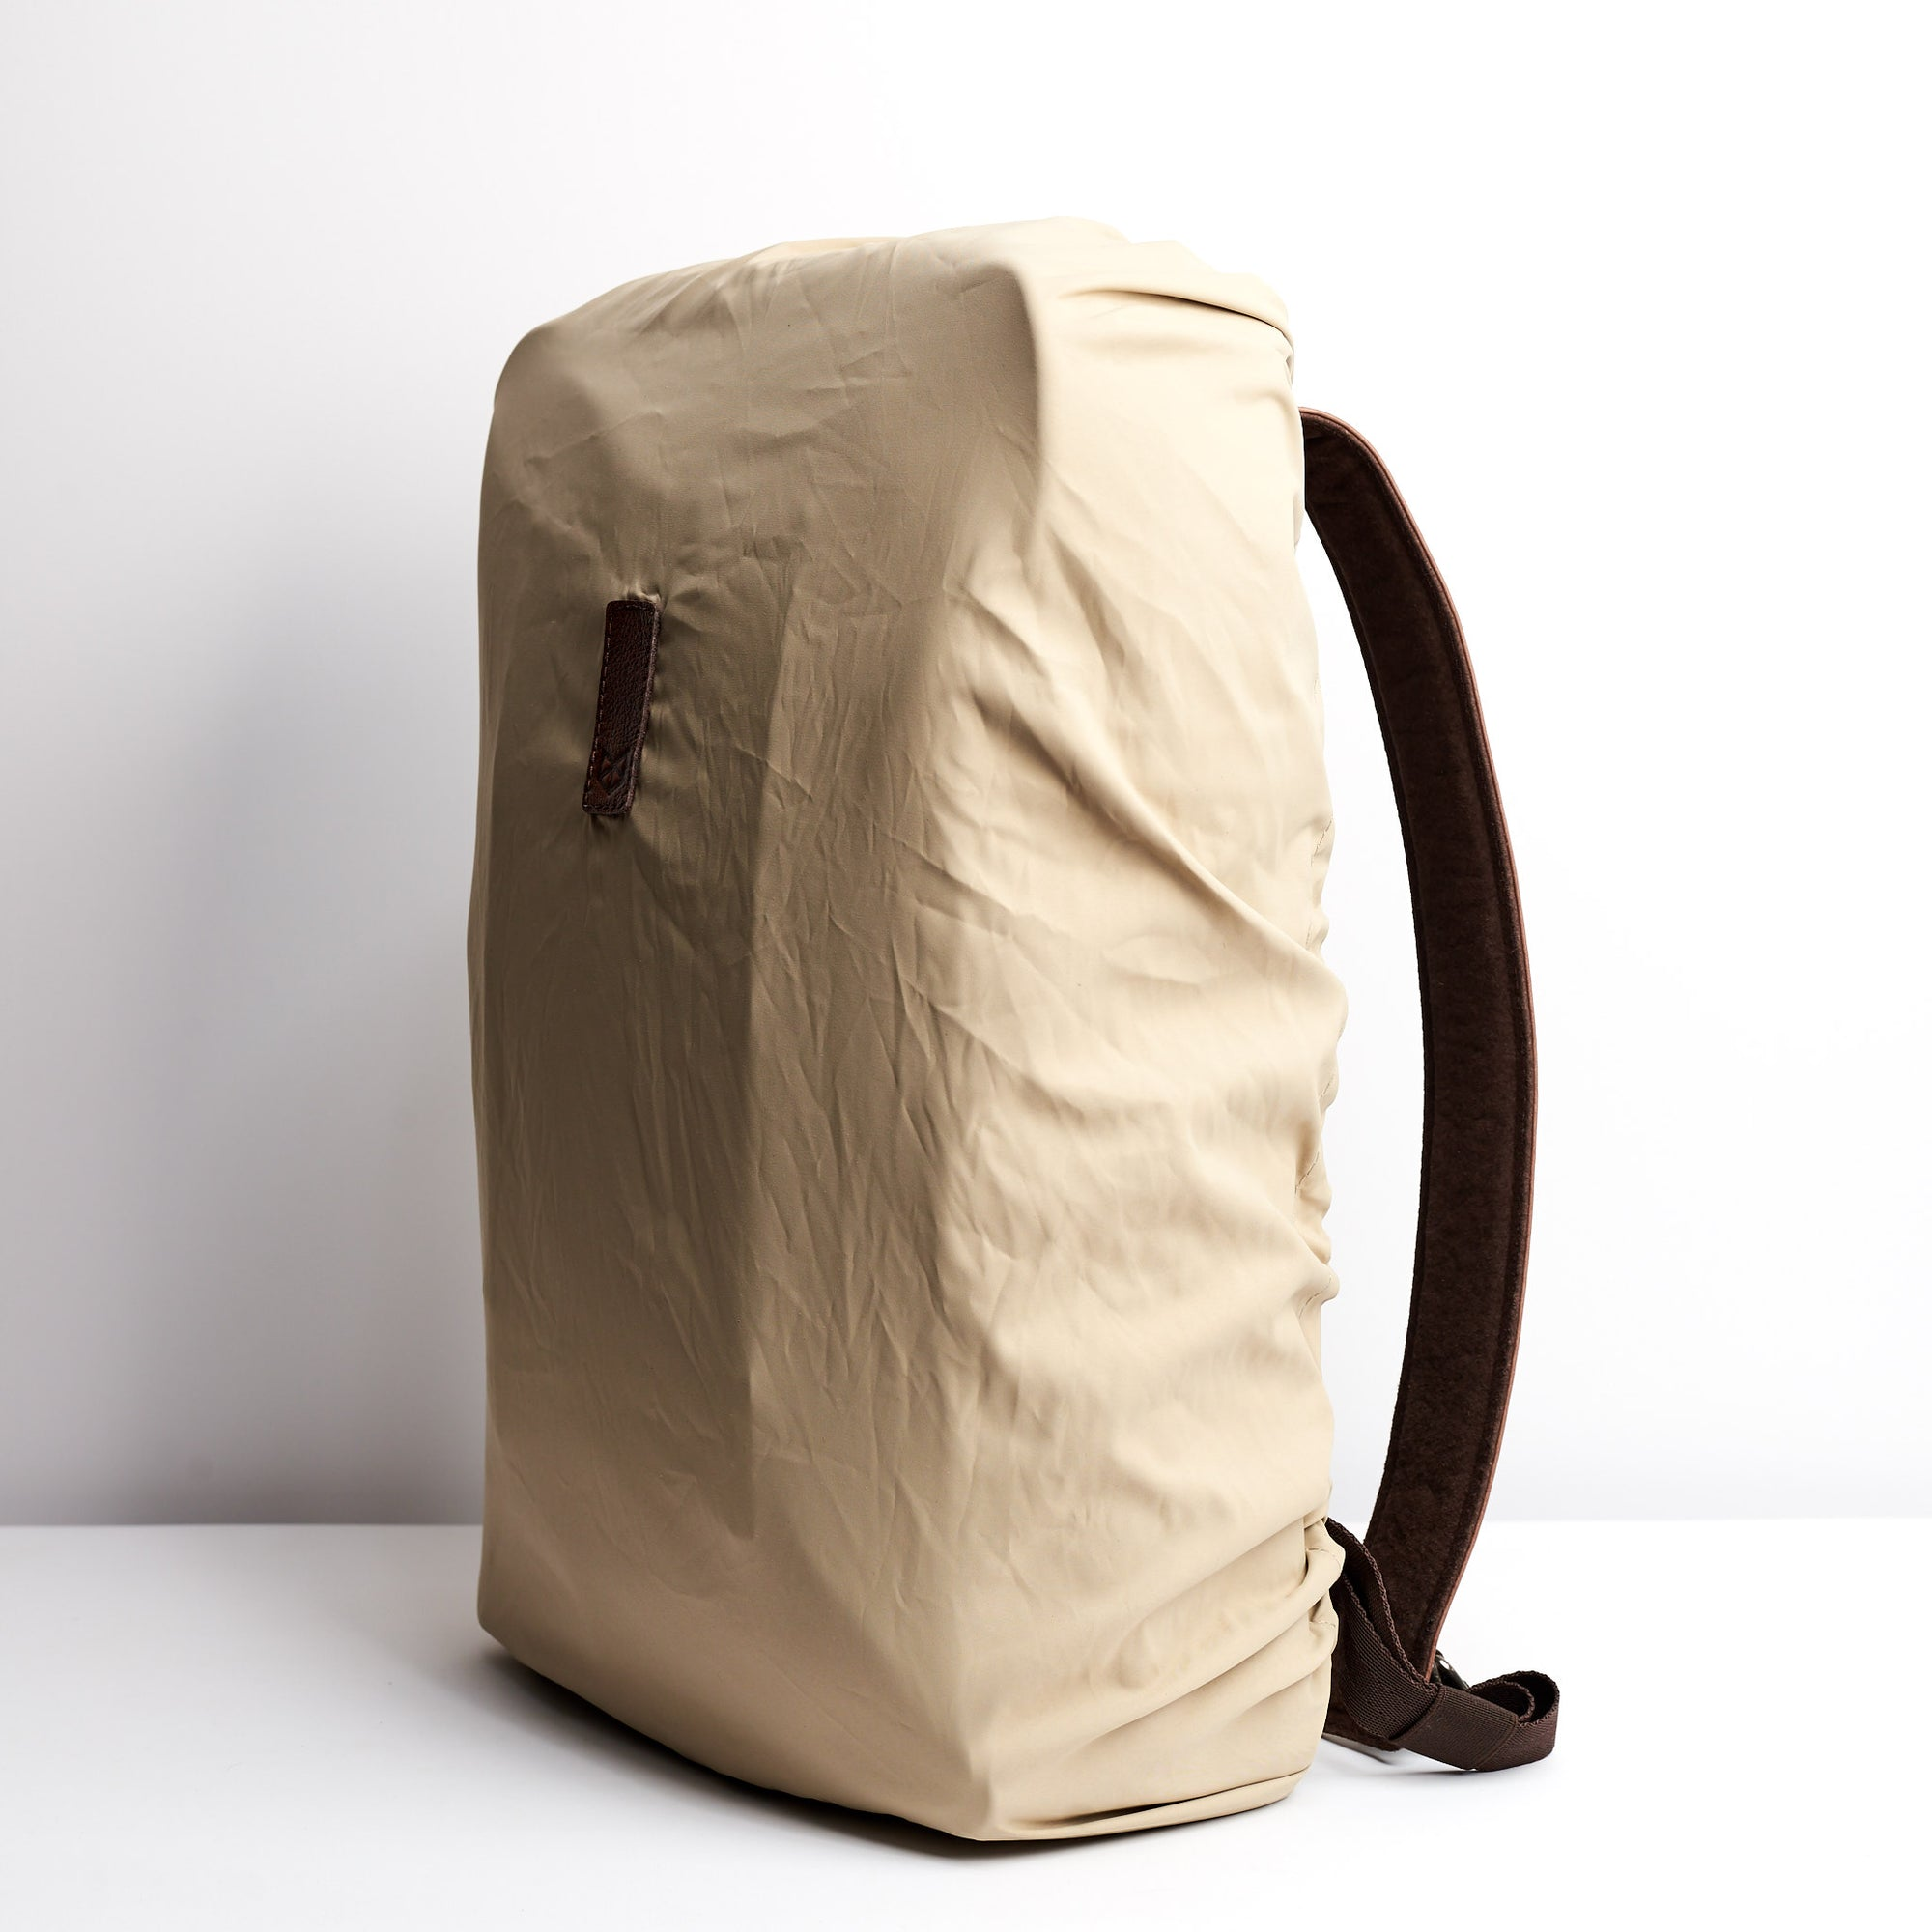 Front Beige Perfect fit for all Capra backpacks. Fashionable matte waterproof material. Leather details by Capra Leather.